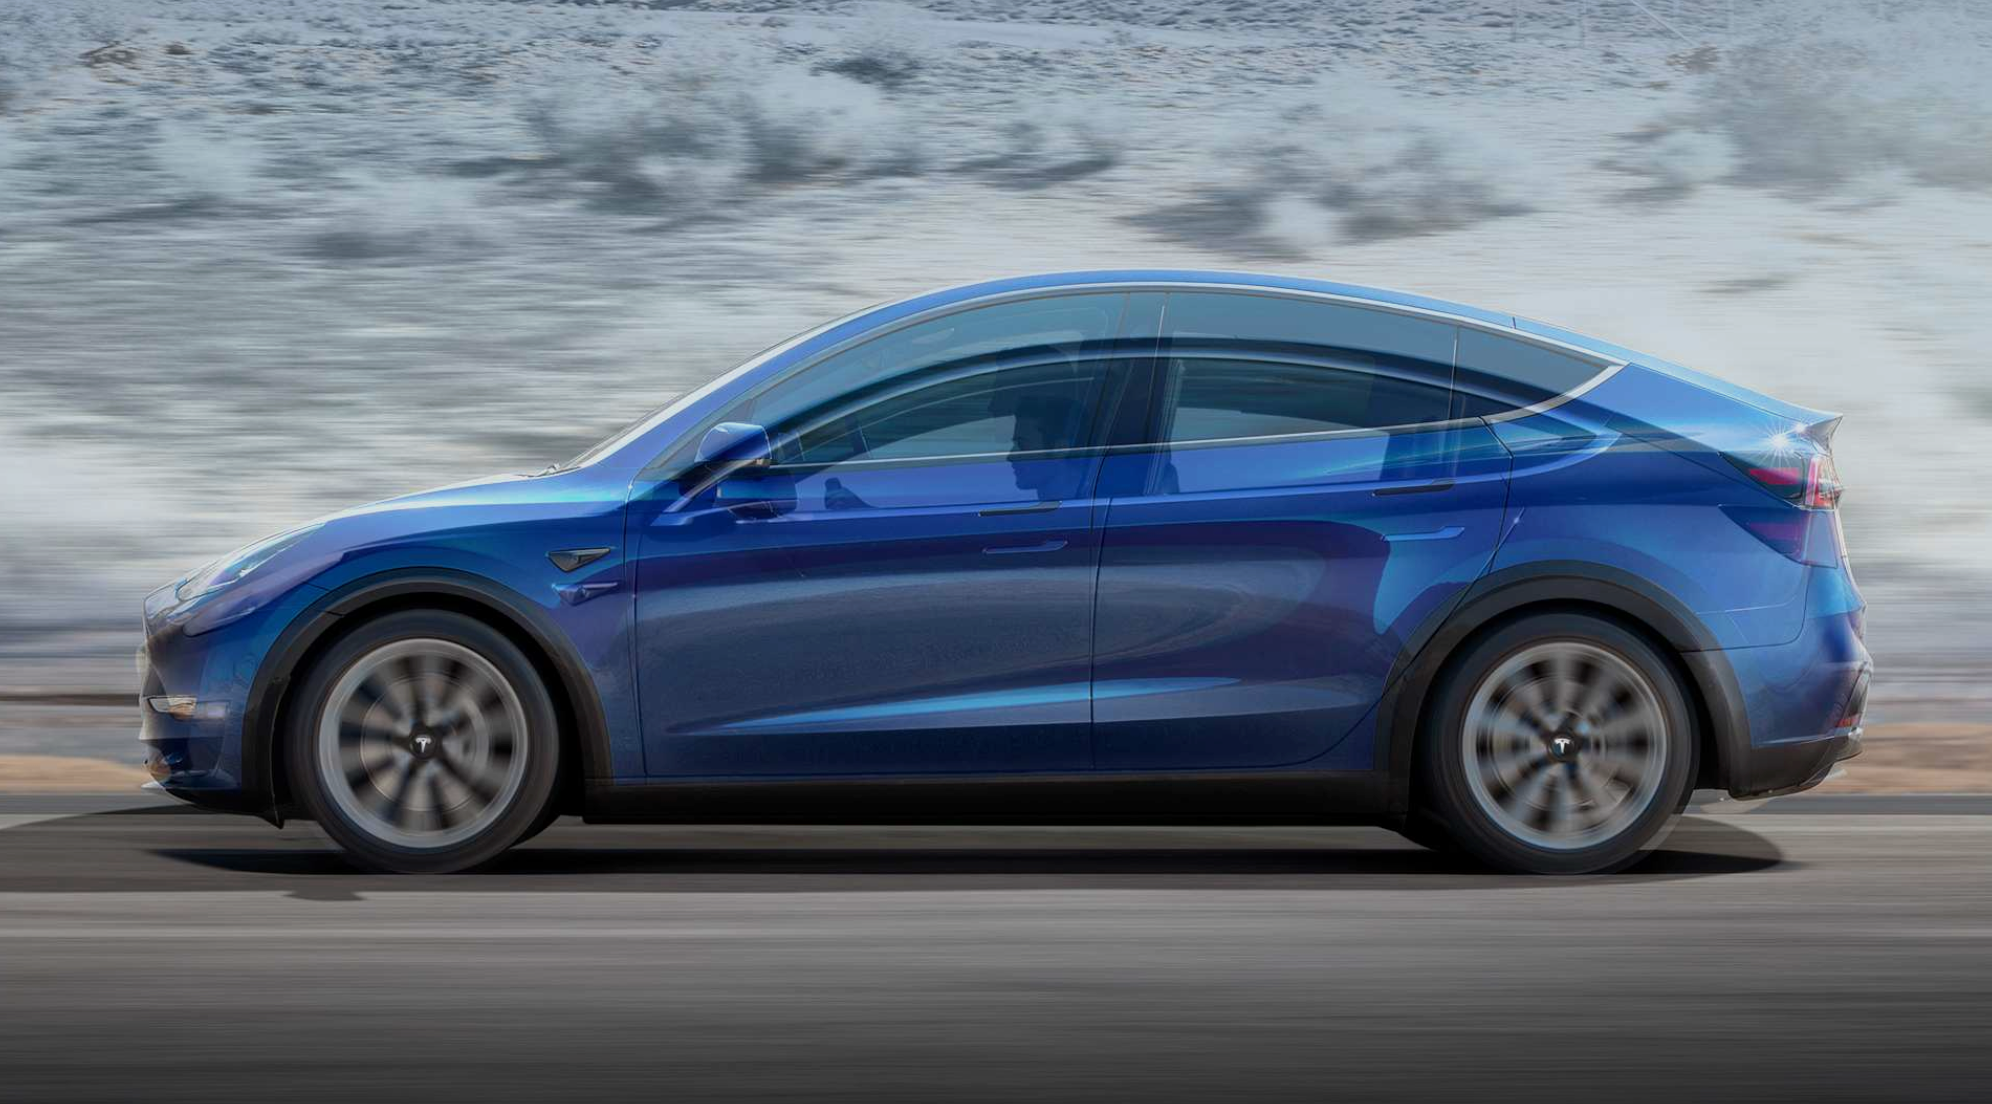 Tesla Model Y Electric Range Just 8 10 Less Than Model 3 Says